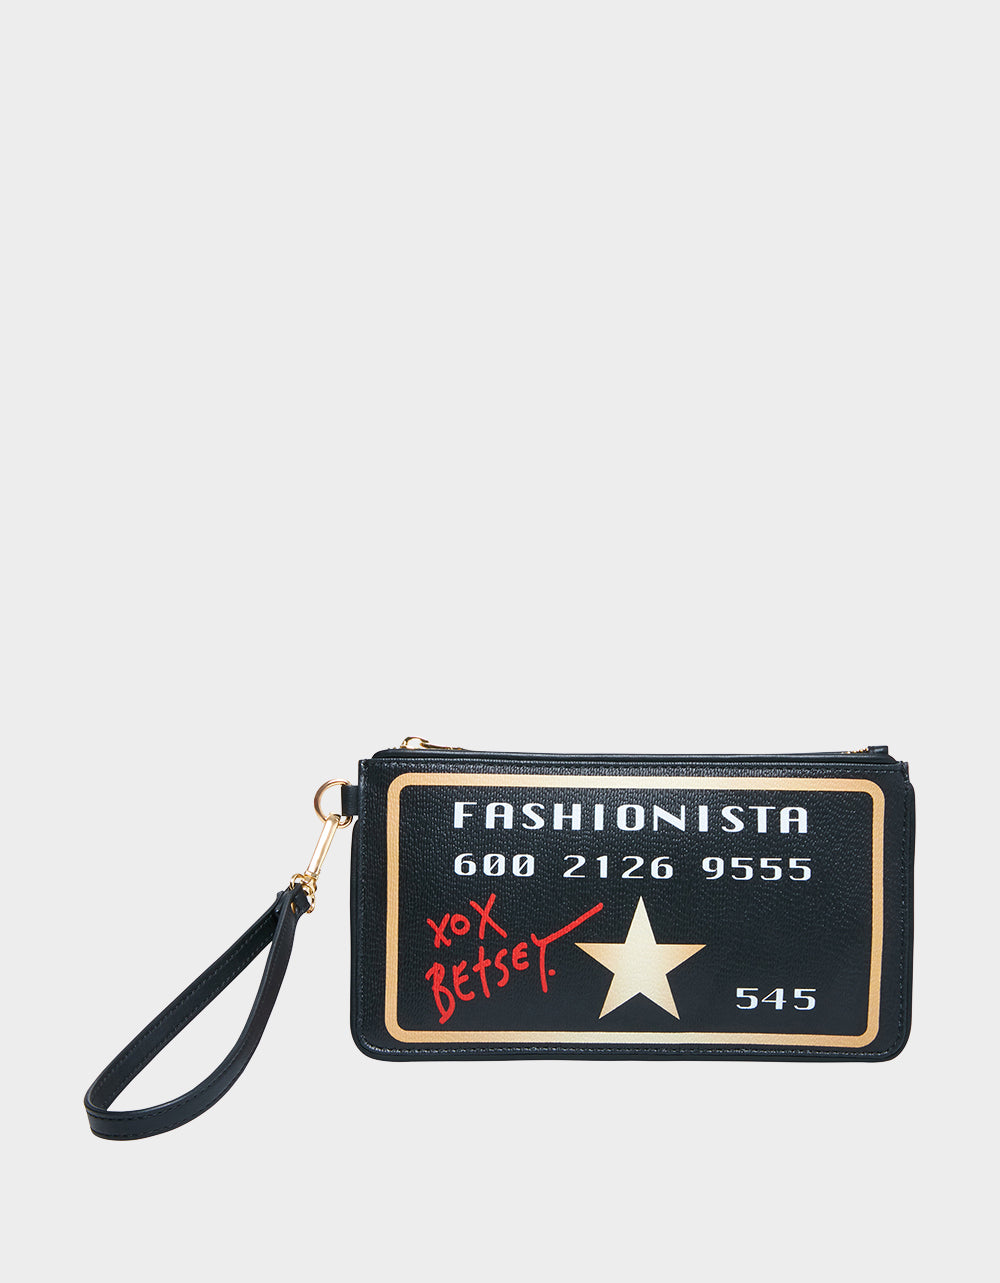 FASHIONISTA WRISTLET BLACK - HANDBAGS - Betsey Johnson